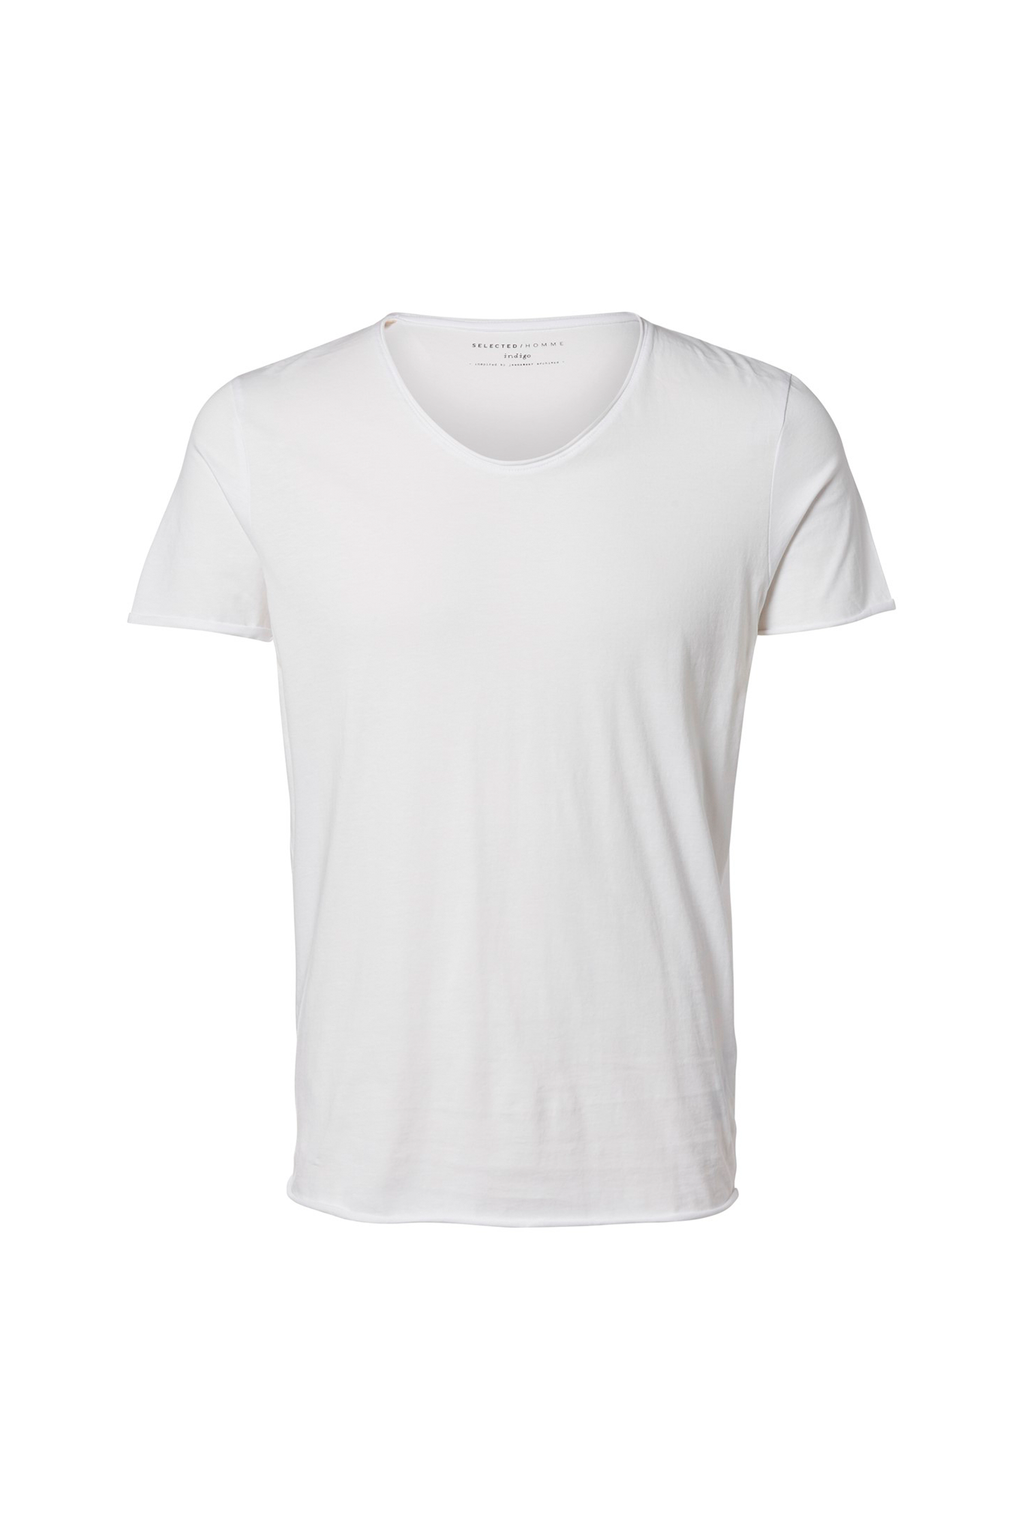 New Merce Tee - O-Neck - Bright White - Audace Copenhagen